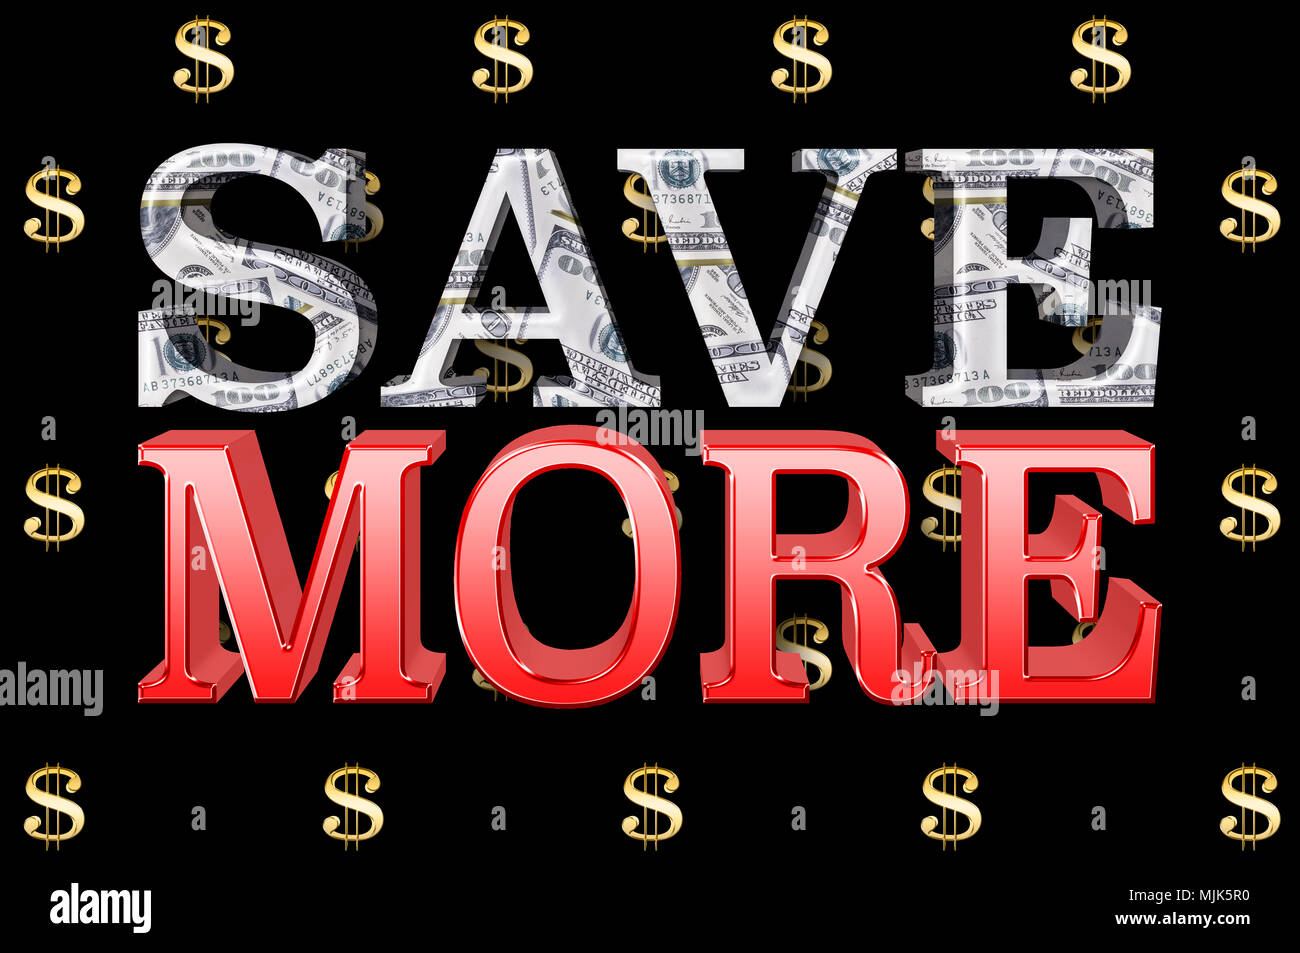 Stock Illustration - Large Metallic Text: Save More, 3D Illustration, Small Golden Dollar Currency Signs In the Black Background. - Stock Image